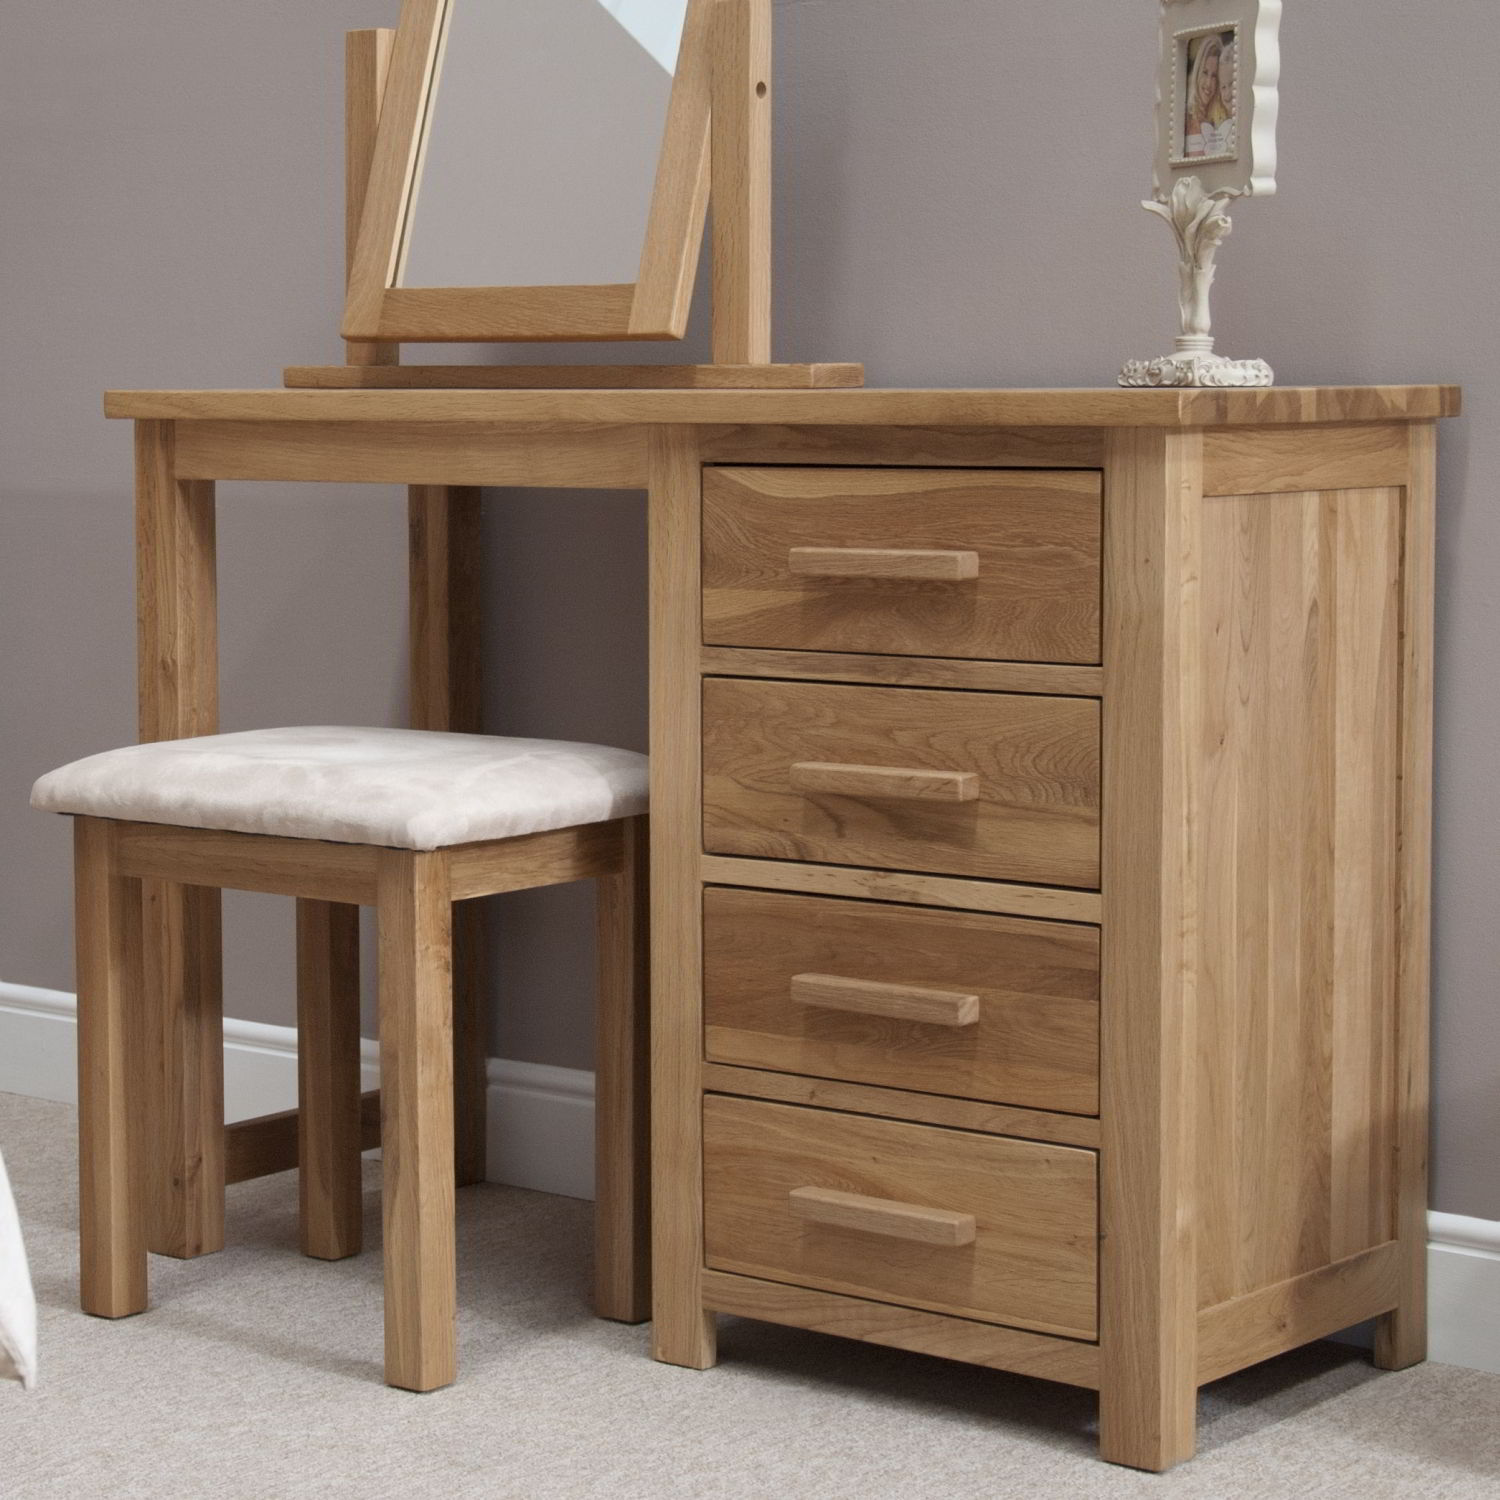 Eton solid oak contemporary bedroom furniture dressing for Bedroom furniture uk